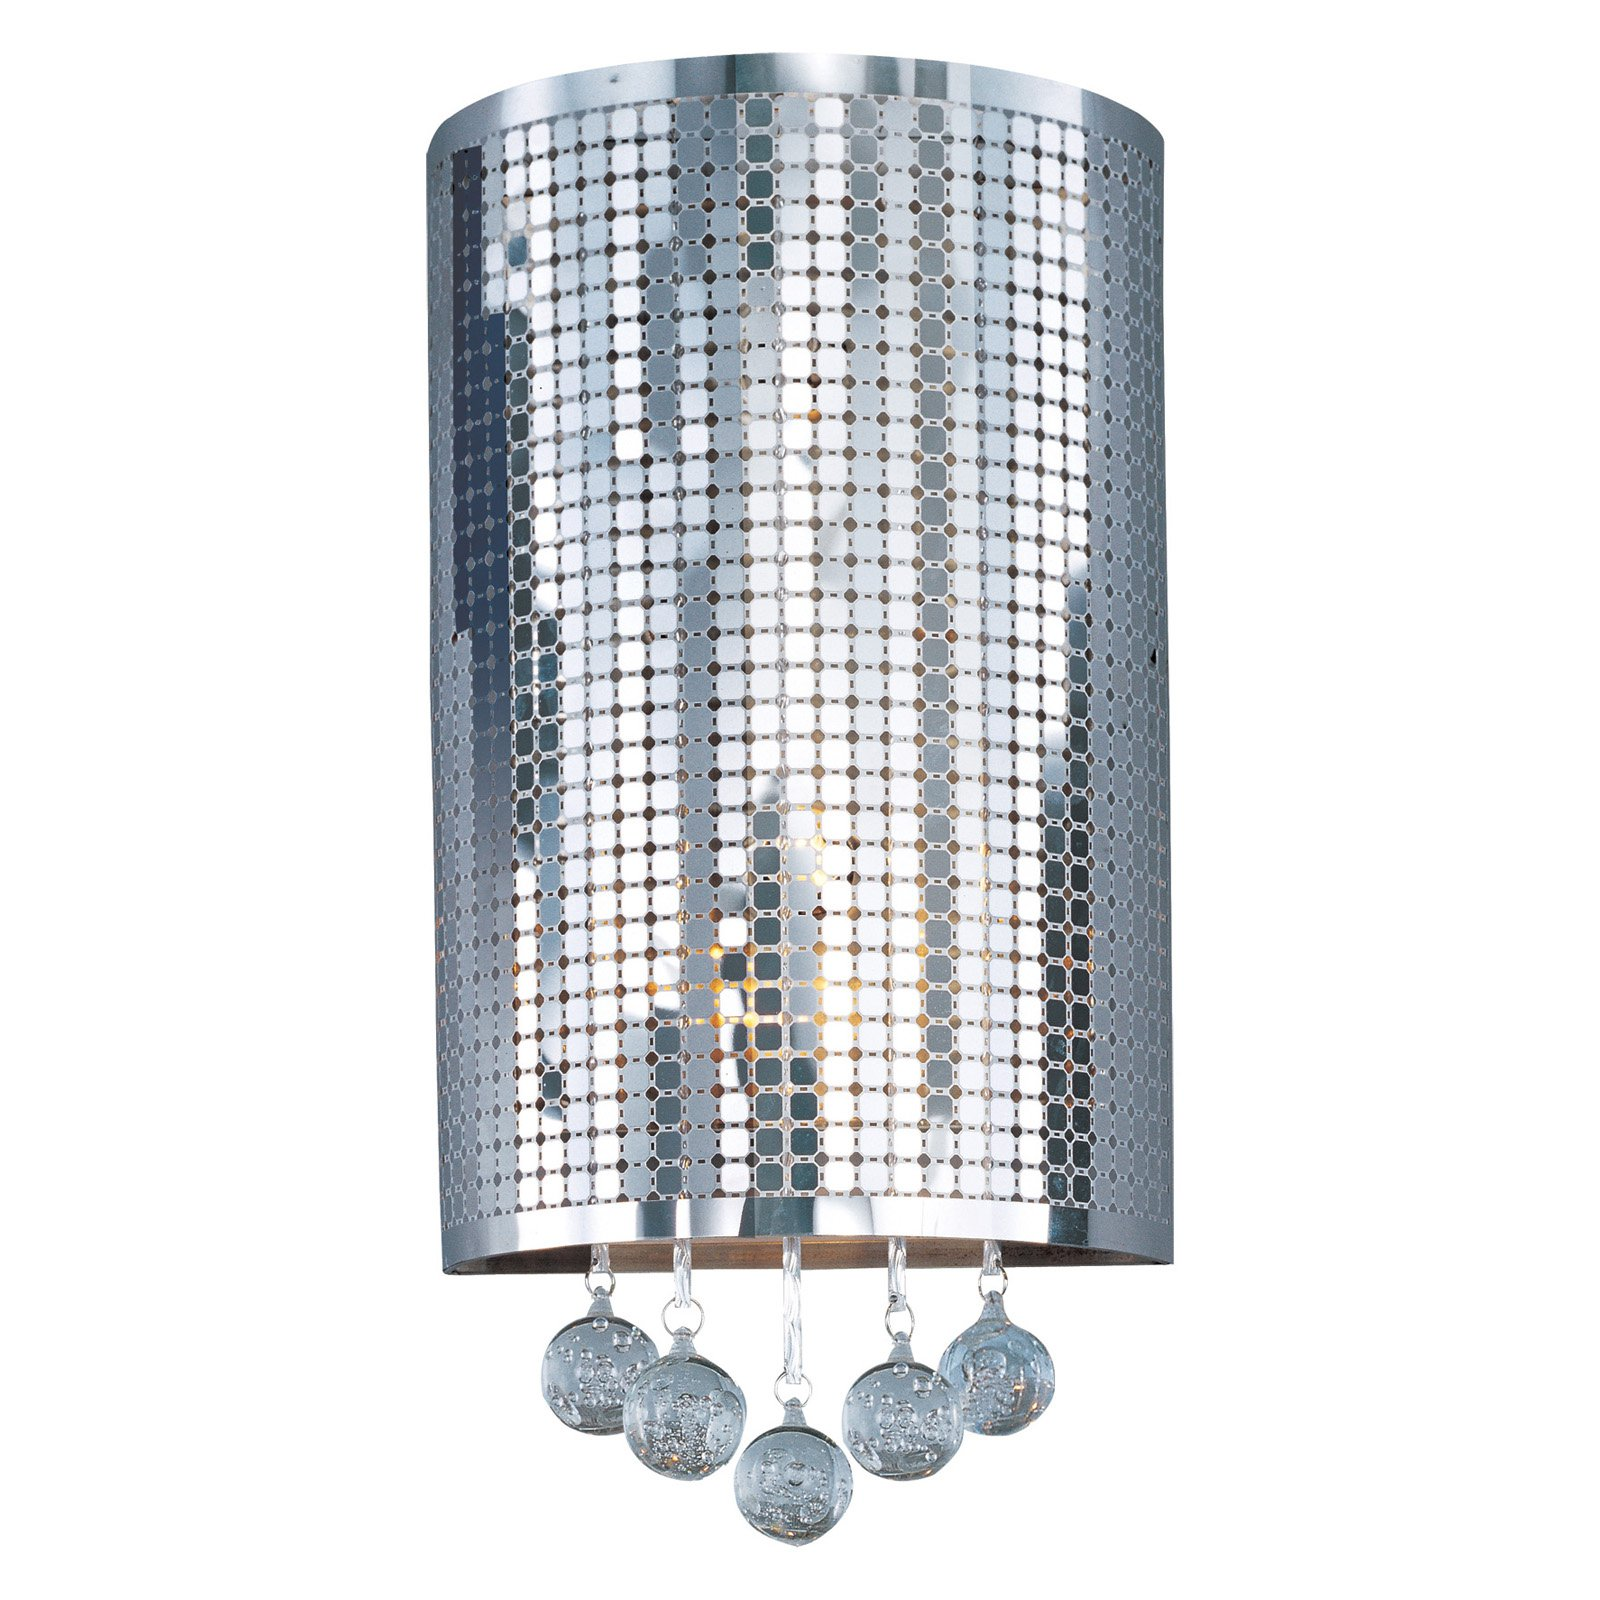 ET2 Illusion Wall Sconce - 8W in. Polished Chrome